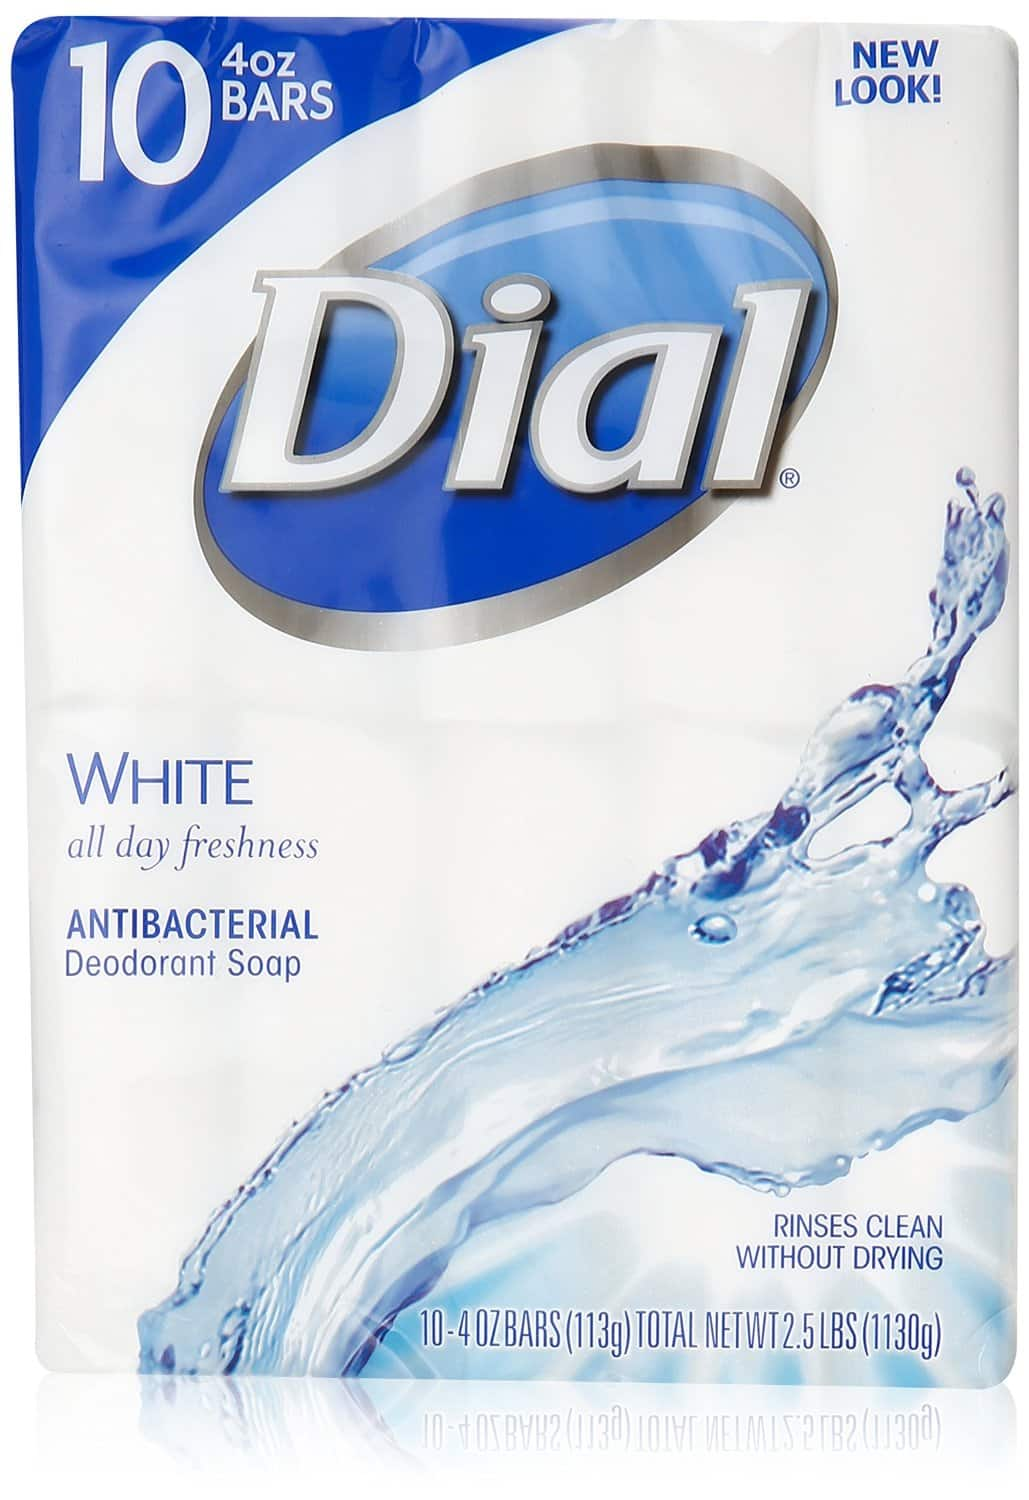 3-Pack of 10-Count Dial Deodorant Soap  $10 + Free S/H